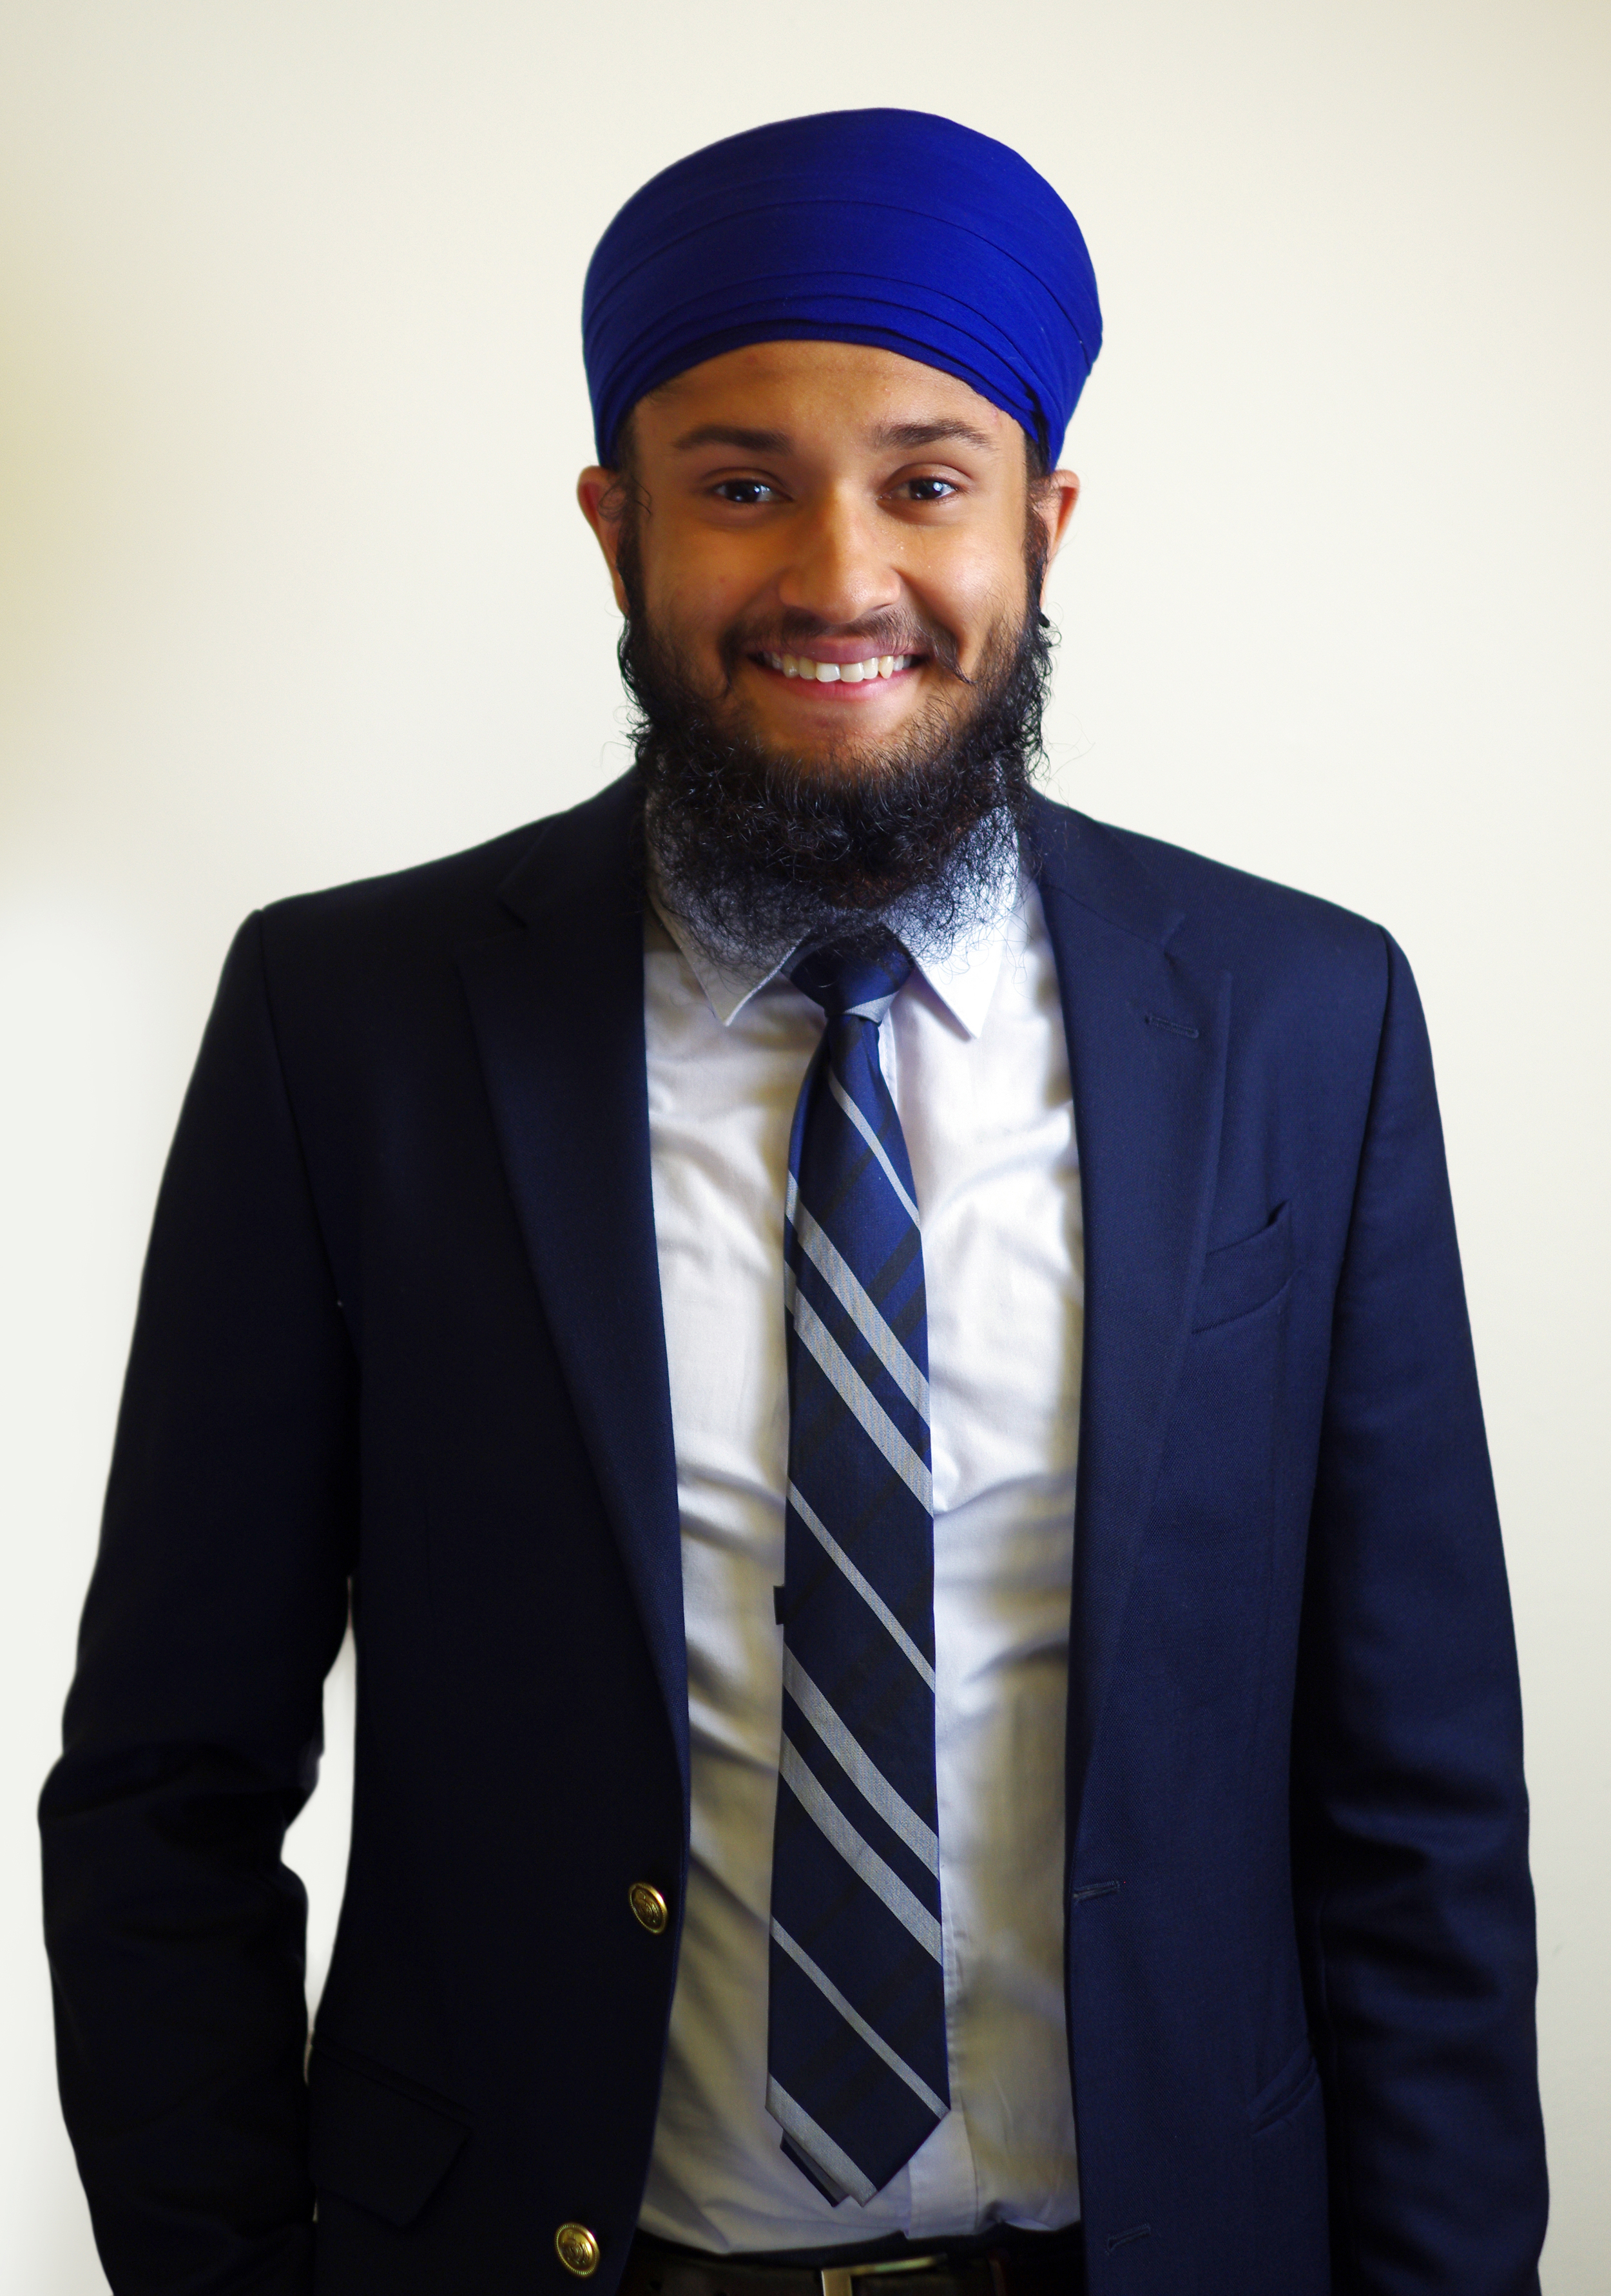 A native New Yorker, Mandeep Singh is a Senior at Colmbia University-- studying Urban Studies and Business. He co-founded FLIP, First-Gen Low-Income Partnership, to help create a safe space and advocate for resources on the institutional level. For fun, he loves to travel: spending a semester abroad in Brazil, South Africa and Vietnam last year.